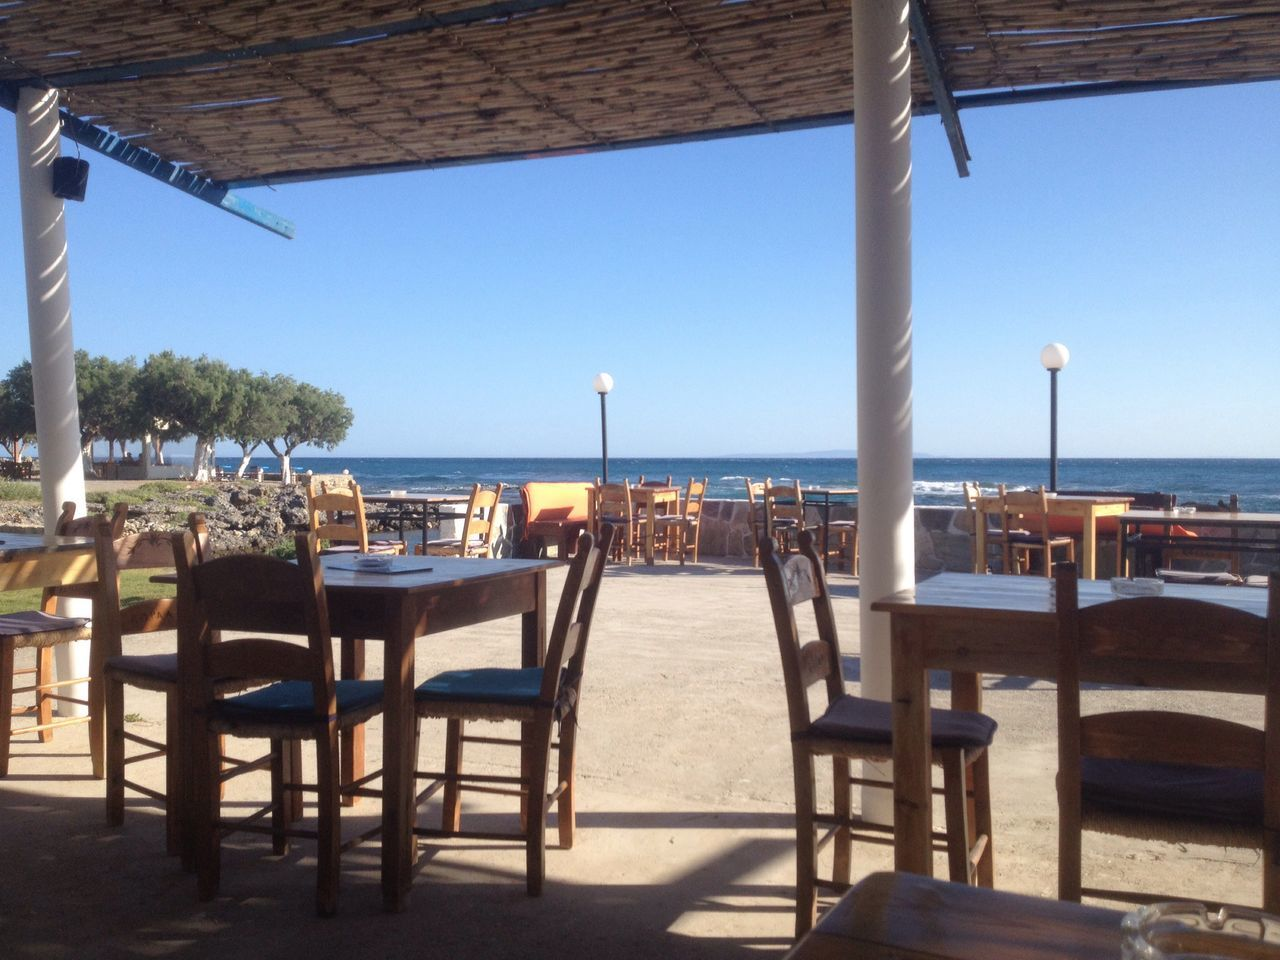 Sea Beach Restaurant Tranquility No People Horizon Over Water Outdoors